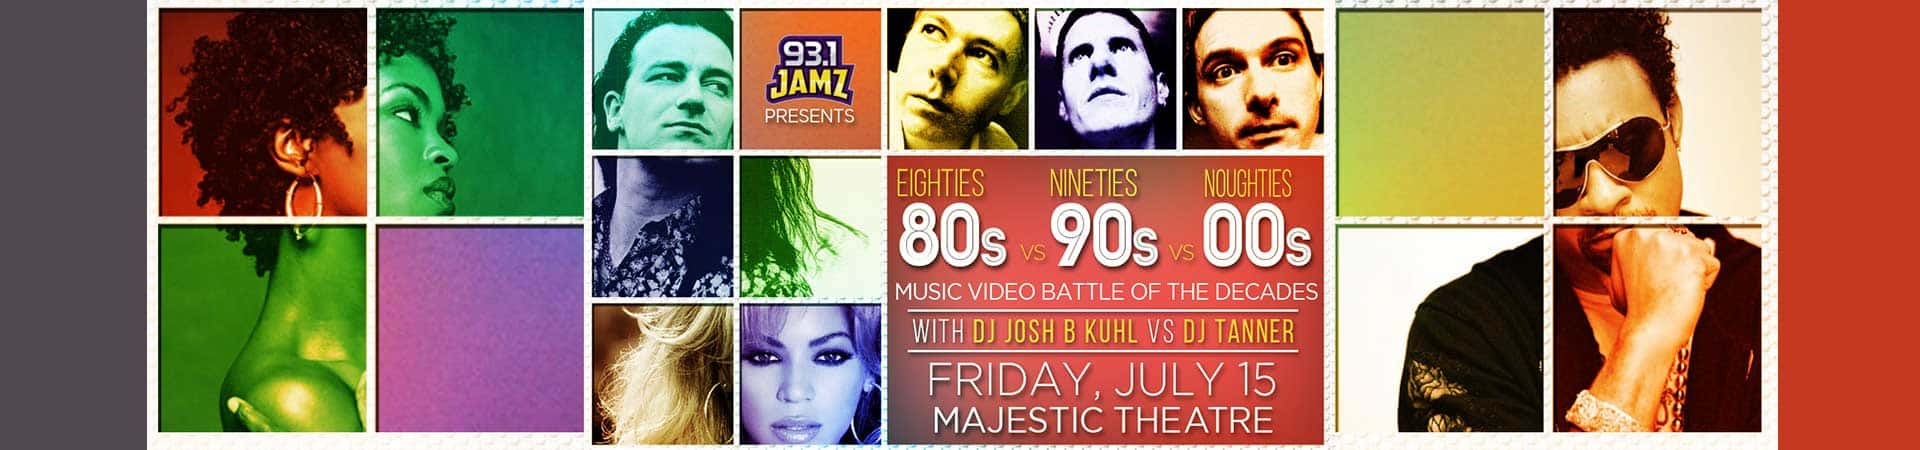 80s VS 90s VS 00s: A Music Video Battle of the Decades | 93 1 JAMZ